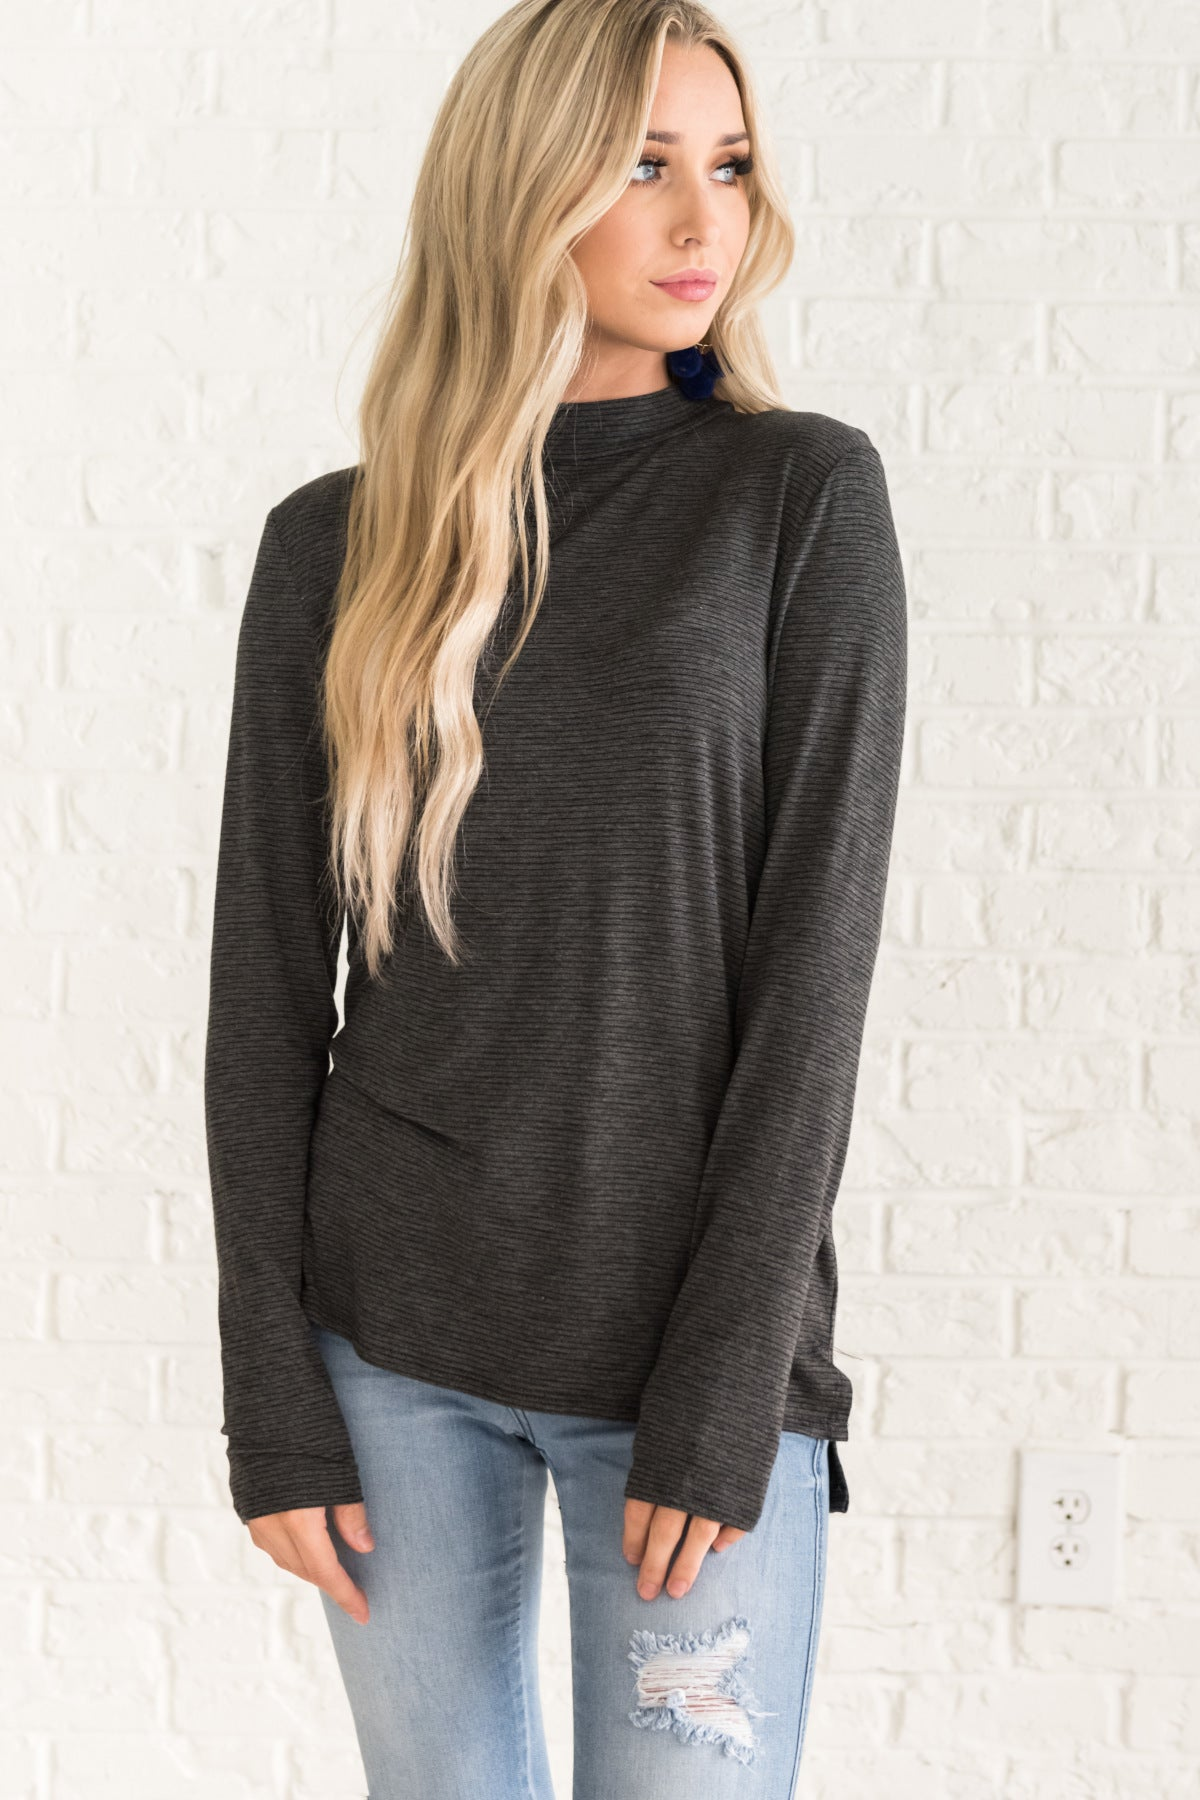 Gray Long Sleeve Striped Tops for Women